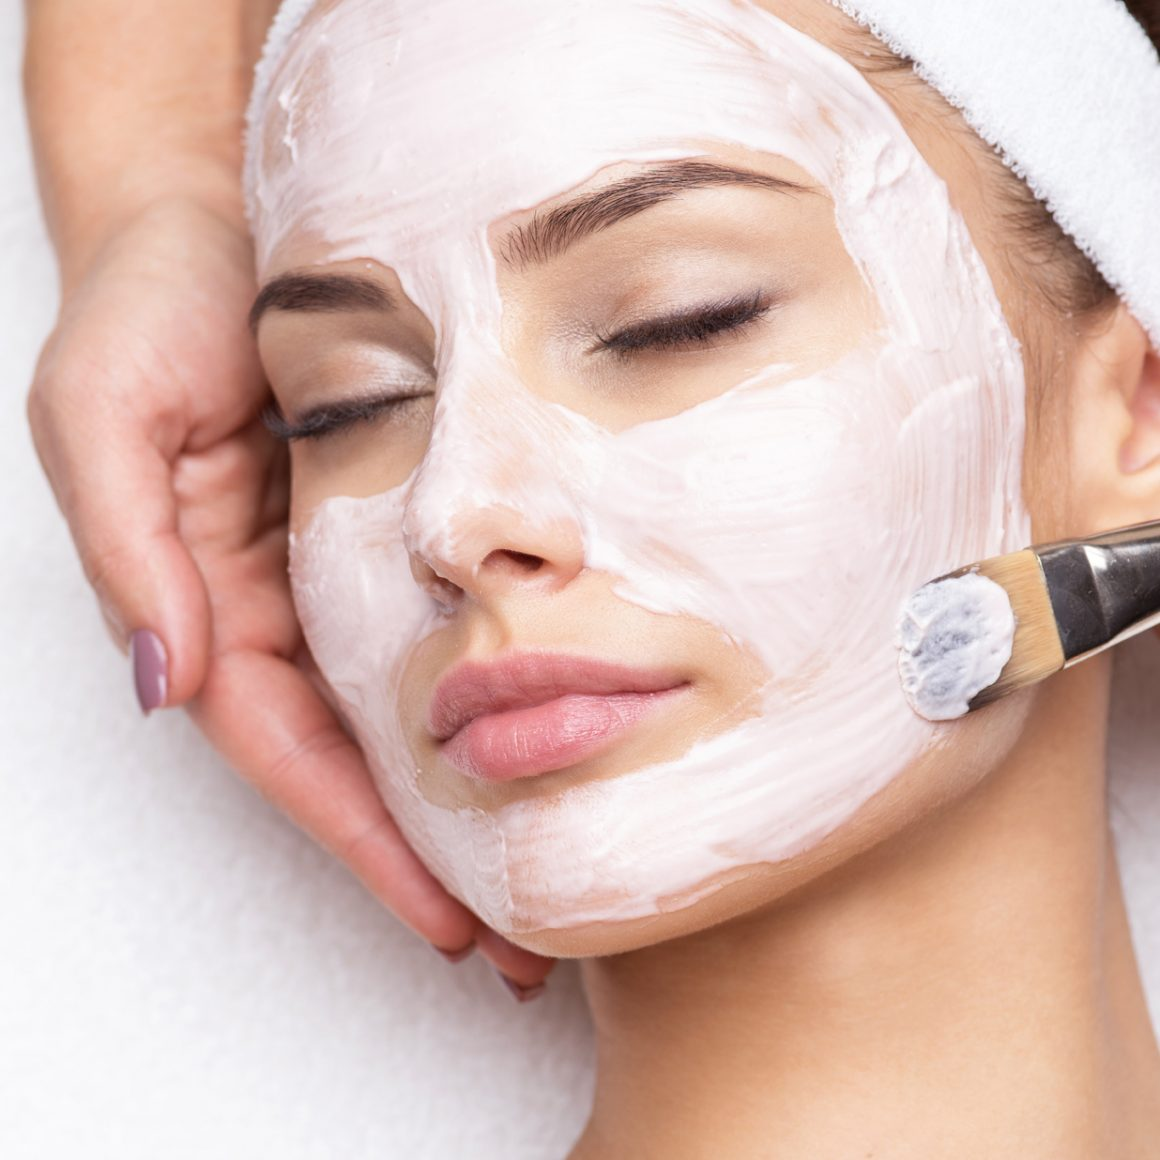 3 Simple Dry Skin Tips – Heal Your Skin Naturally